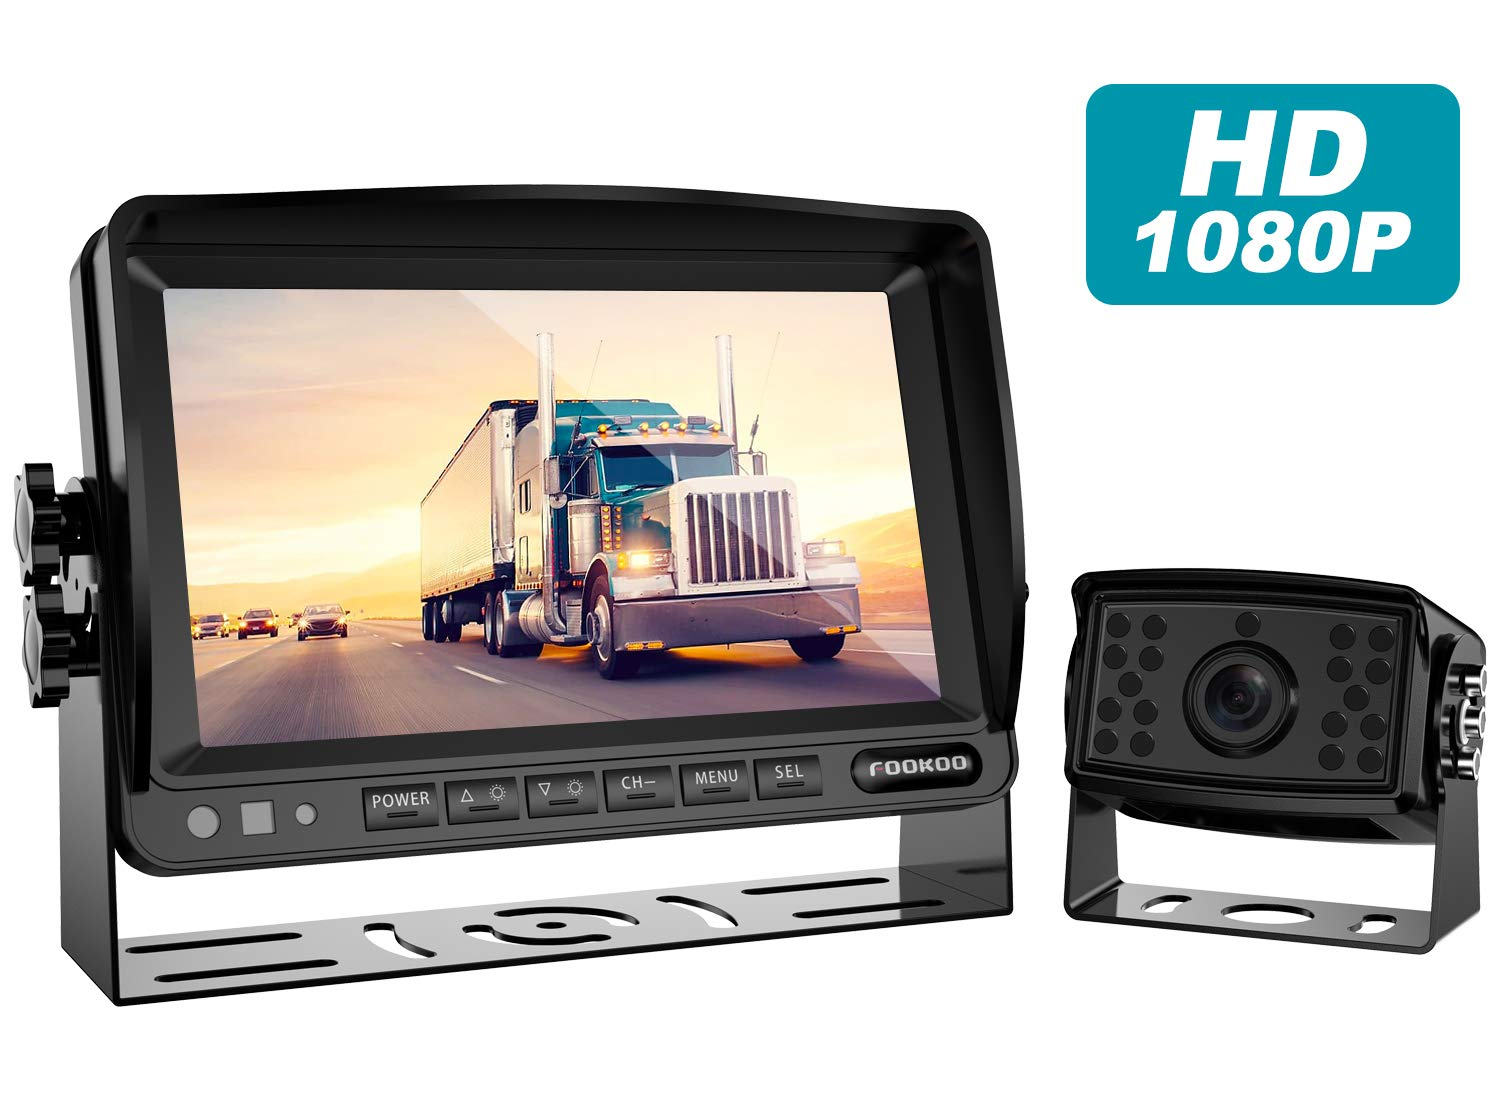 Fookoo Ⅱ HD Backup Camera System Kit,7''1080P Reversing Monitor+IP69 Waterproof Rear View Camera,Sharp CCD Chip, 100% Not Wash Up,Truck/Semi-Trailer/Box Truck/RV (FHD1-Wired) by Fookoo